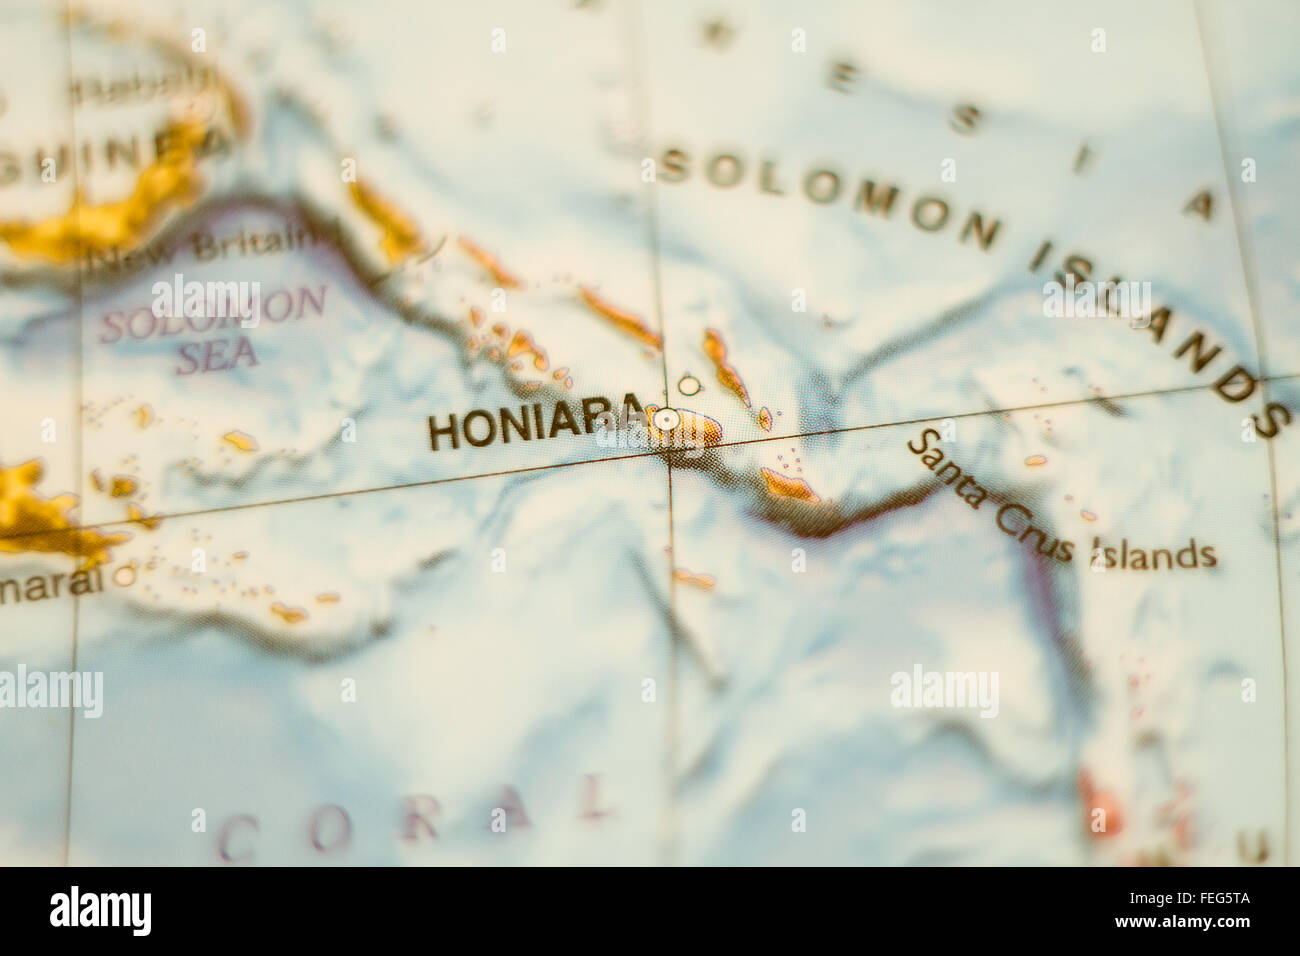 Photo of a map of Solomon Islands and the capital Honiara . - Stock Image